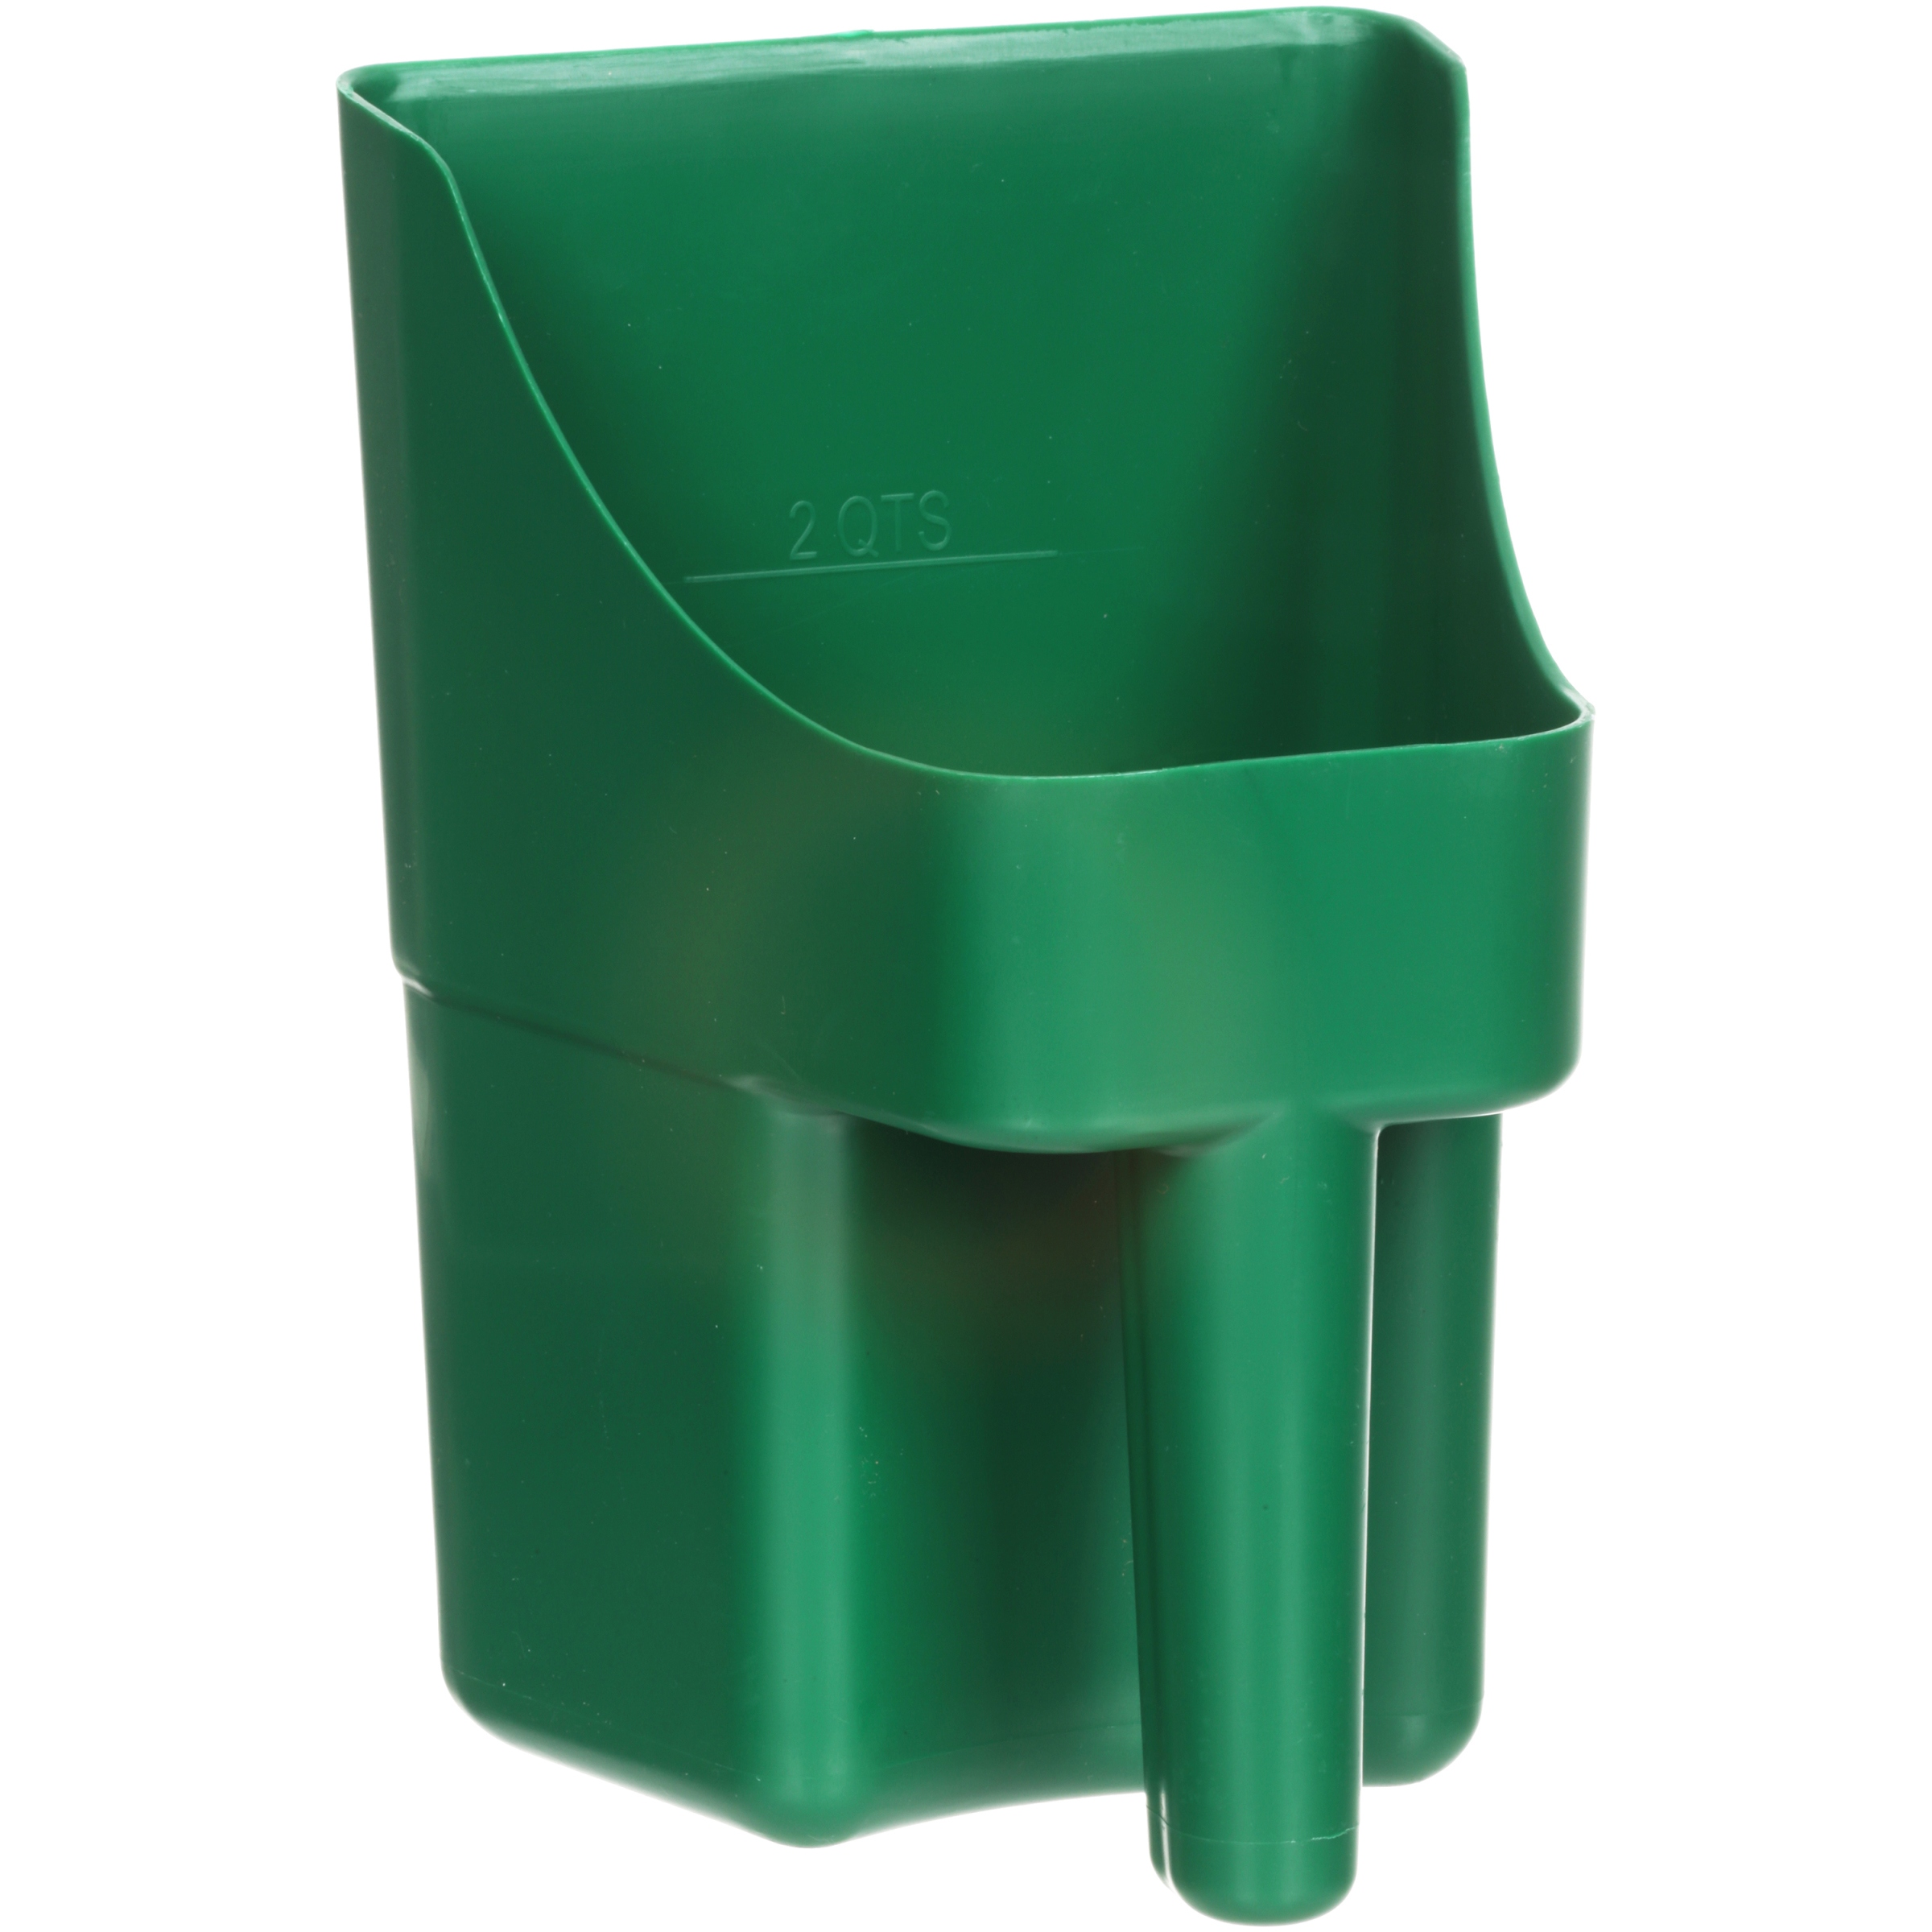 Manna Pro All Purpose 3 qt. Feed Scoop by Tolco Corp